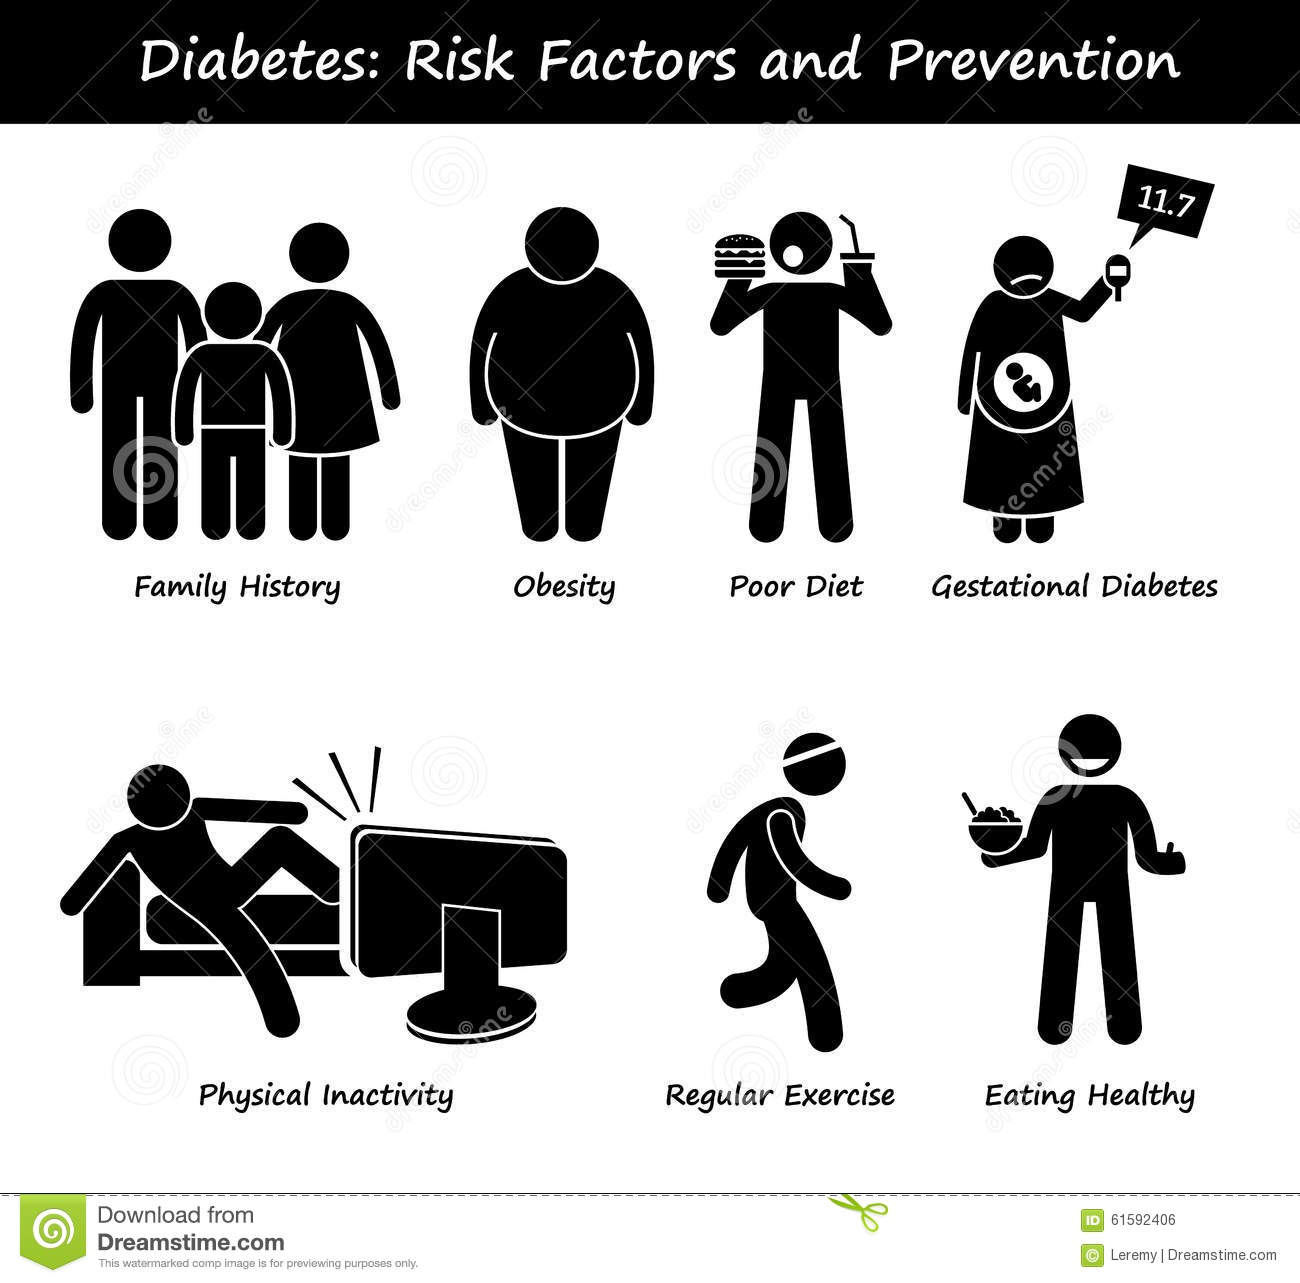 risk factors and treatments for diabetes ★ understanding diabetes ★★ prediabetes risk factors ::the 3 step trick that reverses diabetes permanently in as  it is also good diabetes mellitus treatments.